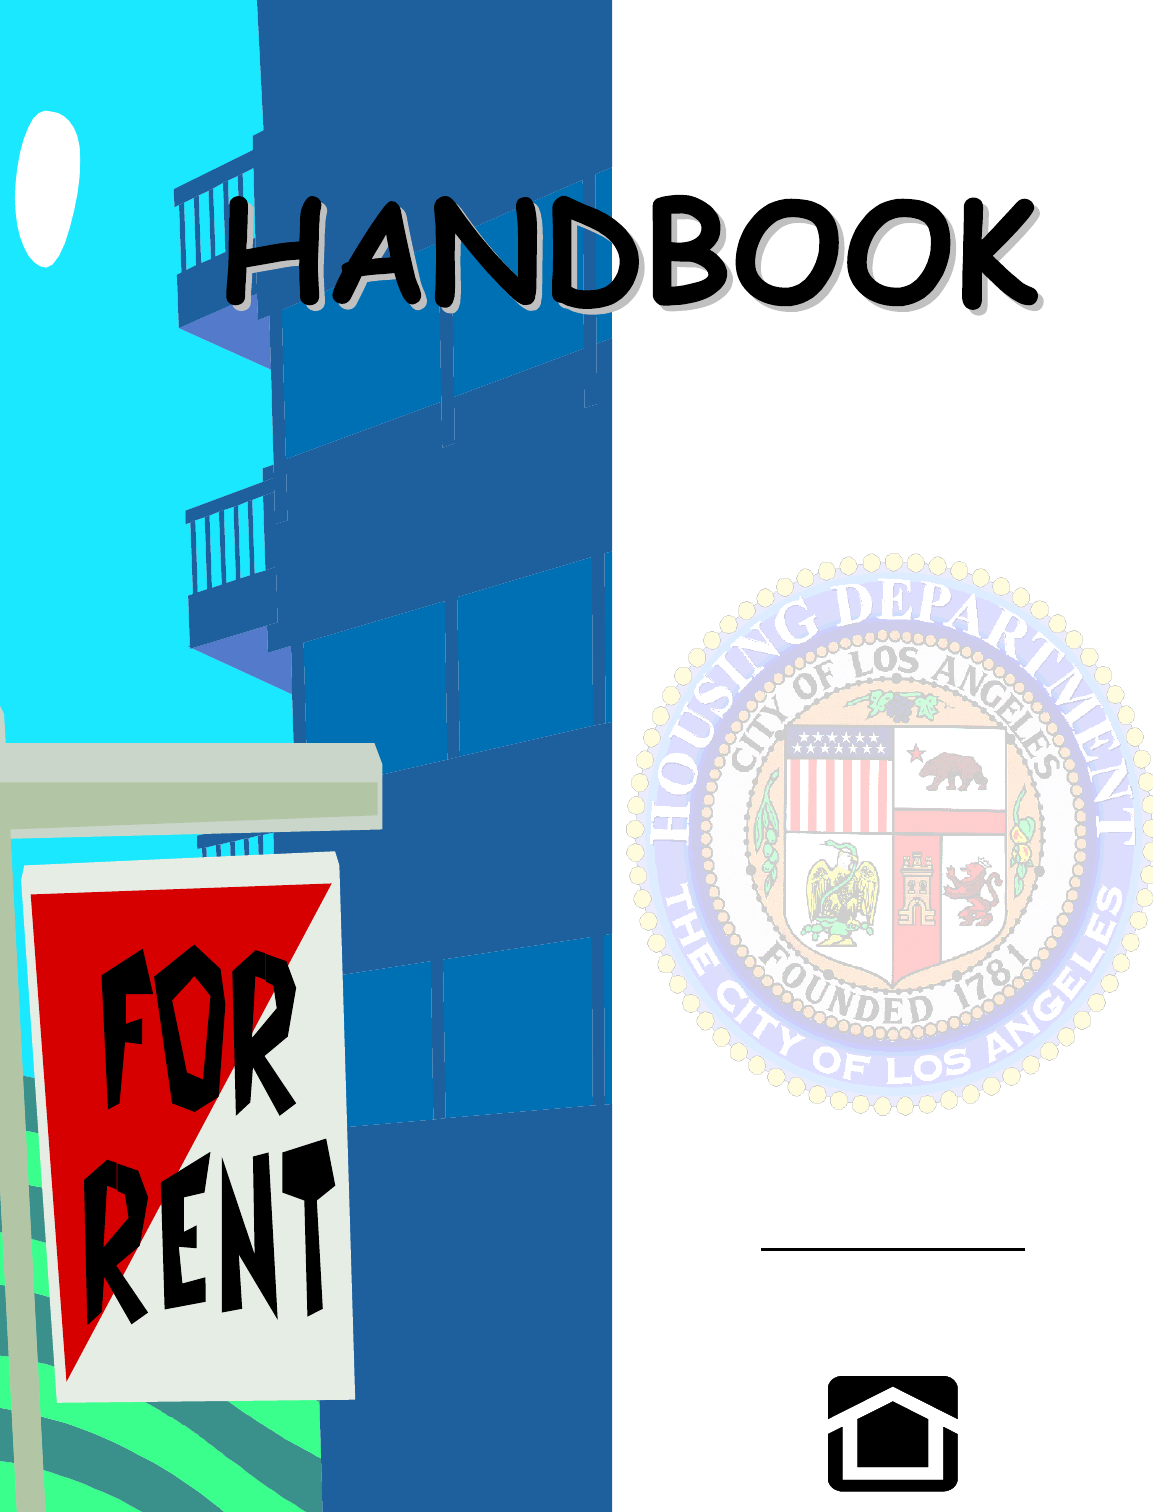 Los angeles landlord tenant handbook for rent stabilized units fandeluxe Gallery